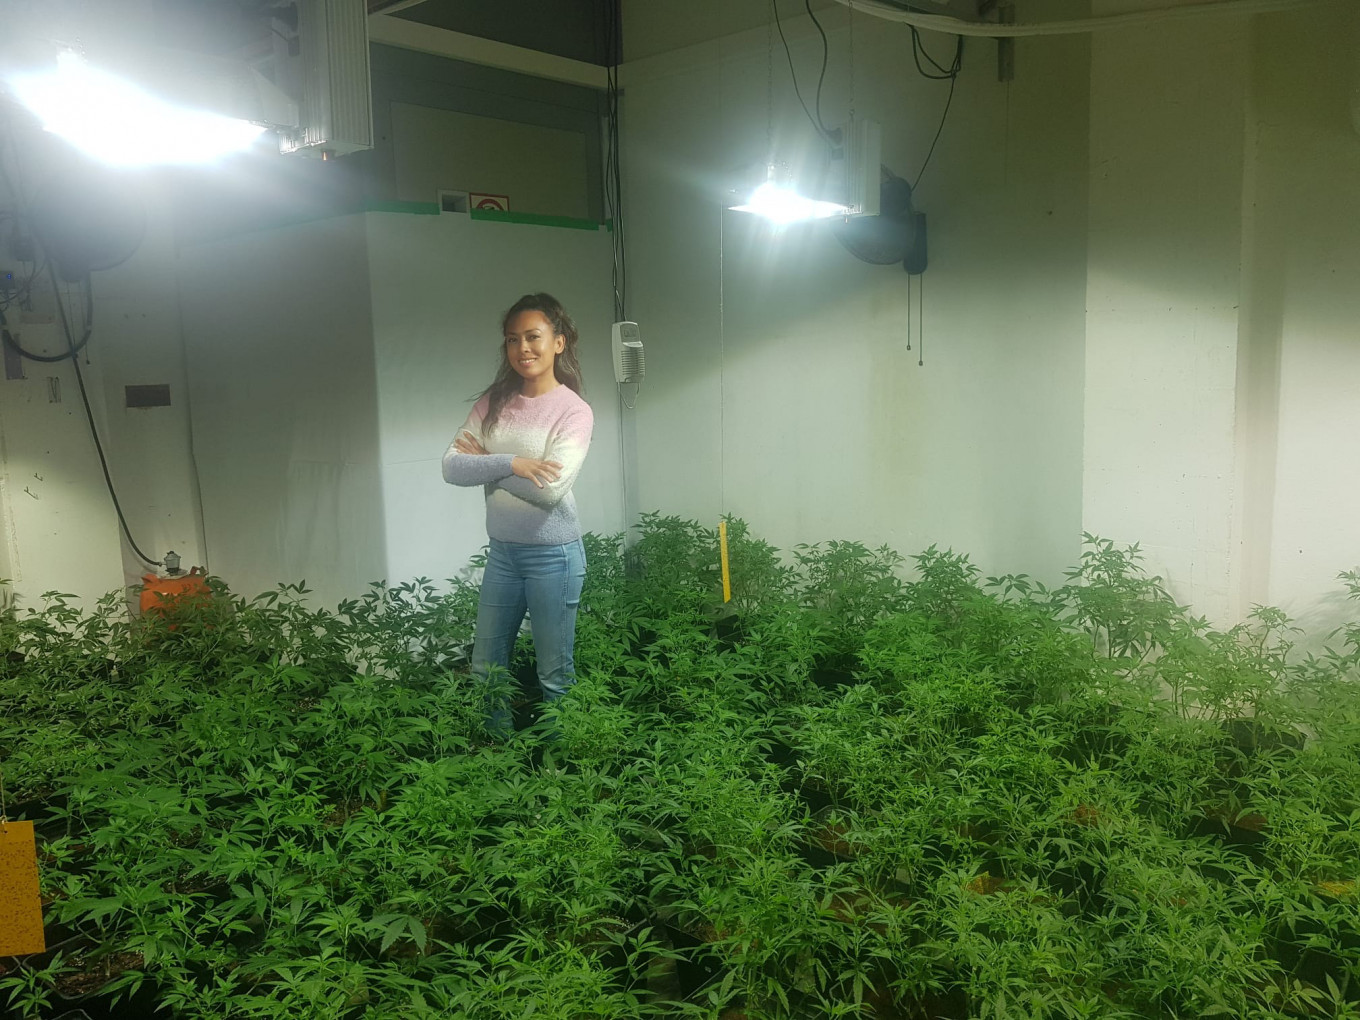 Farming pot abroad: The Indonesians living overseas as marijuana farmers